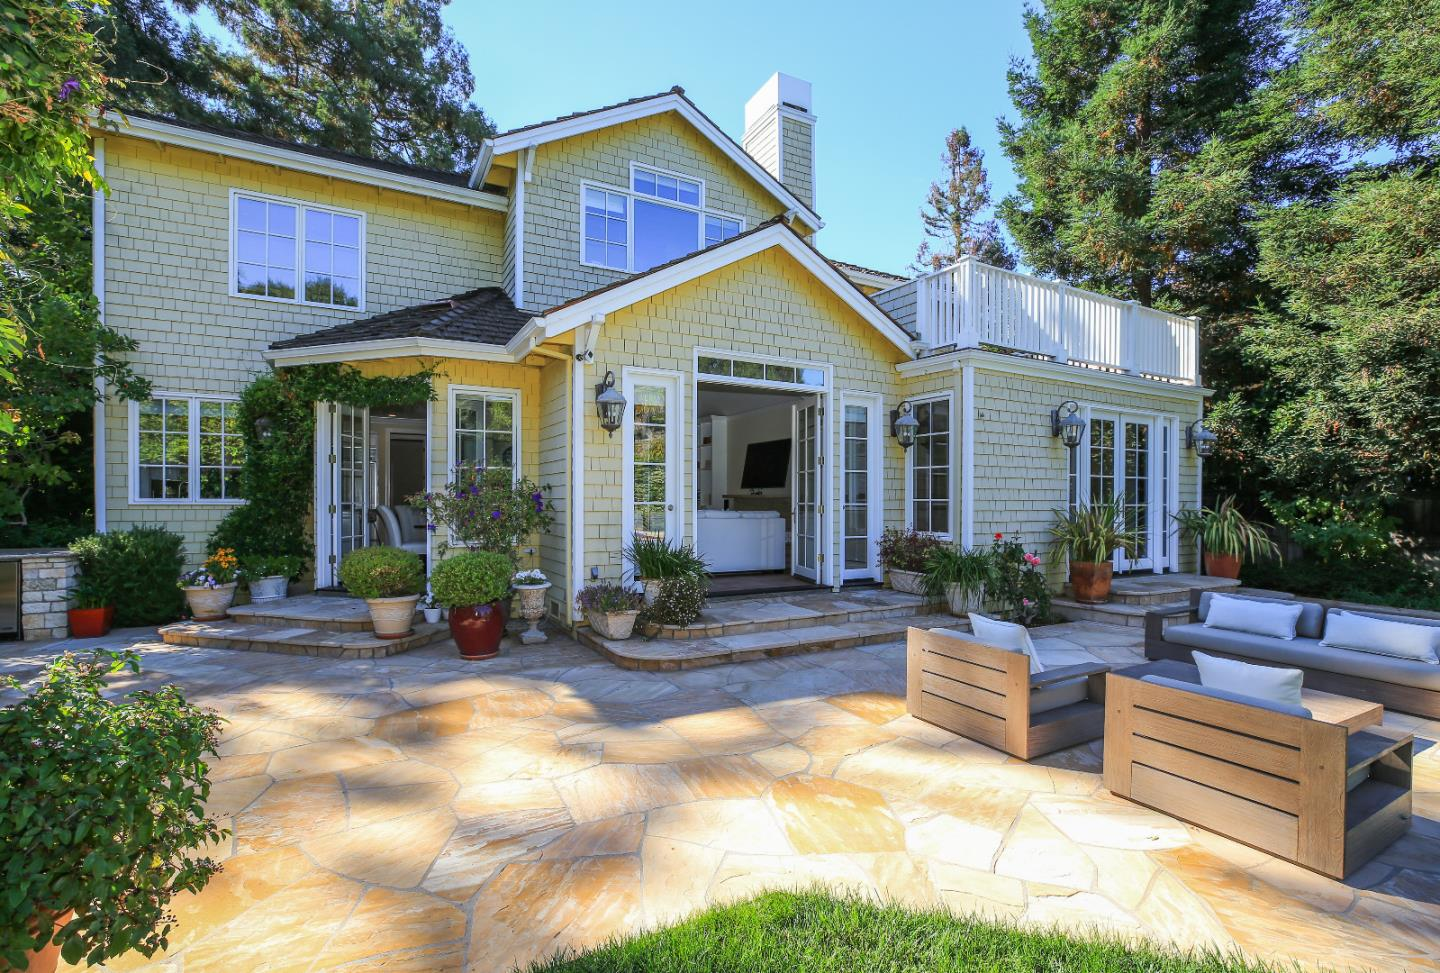 Single Family Home for Sale at 500 Berkeley Avenue Menlo Park, California 94025 United States